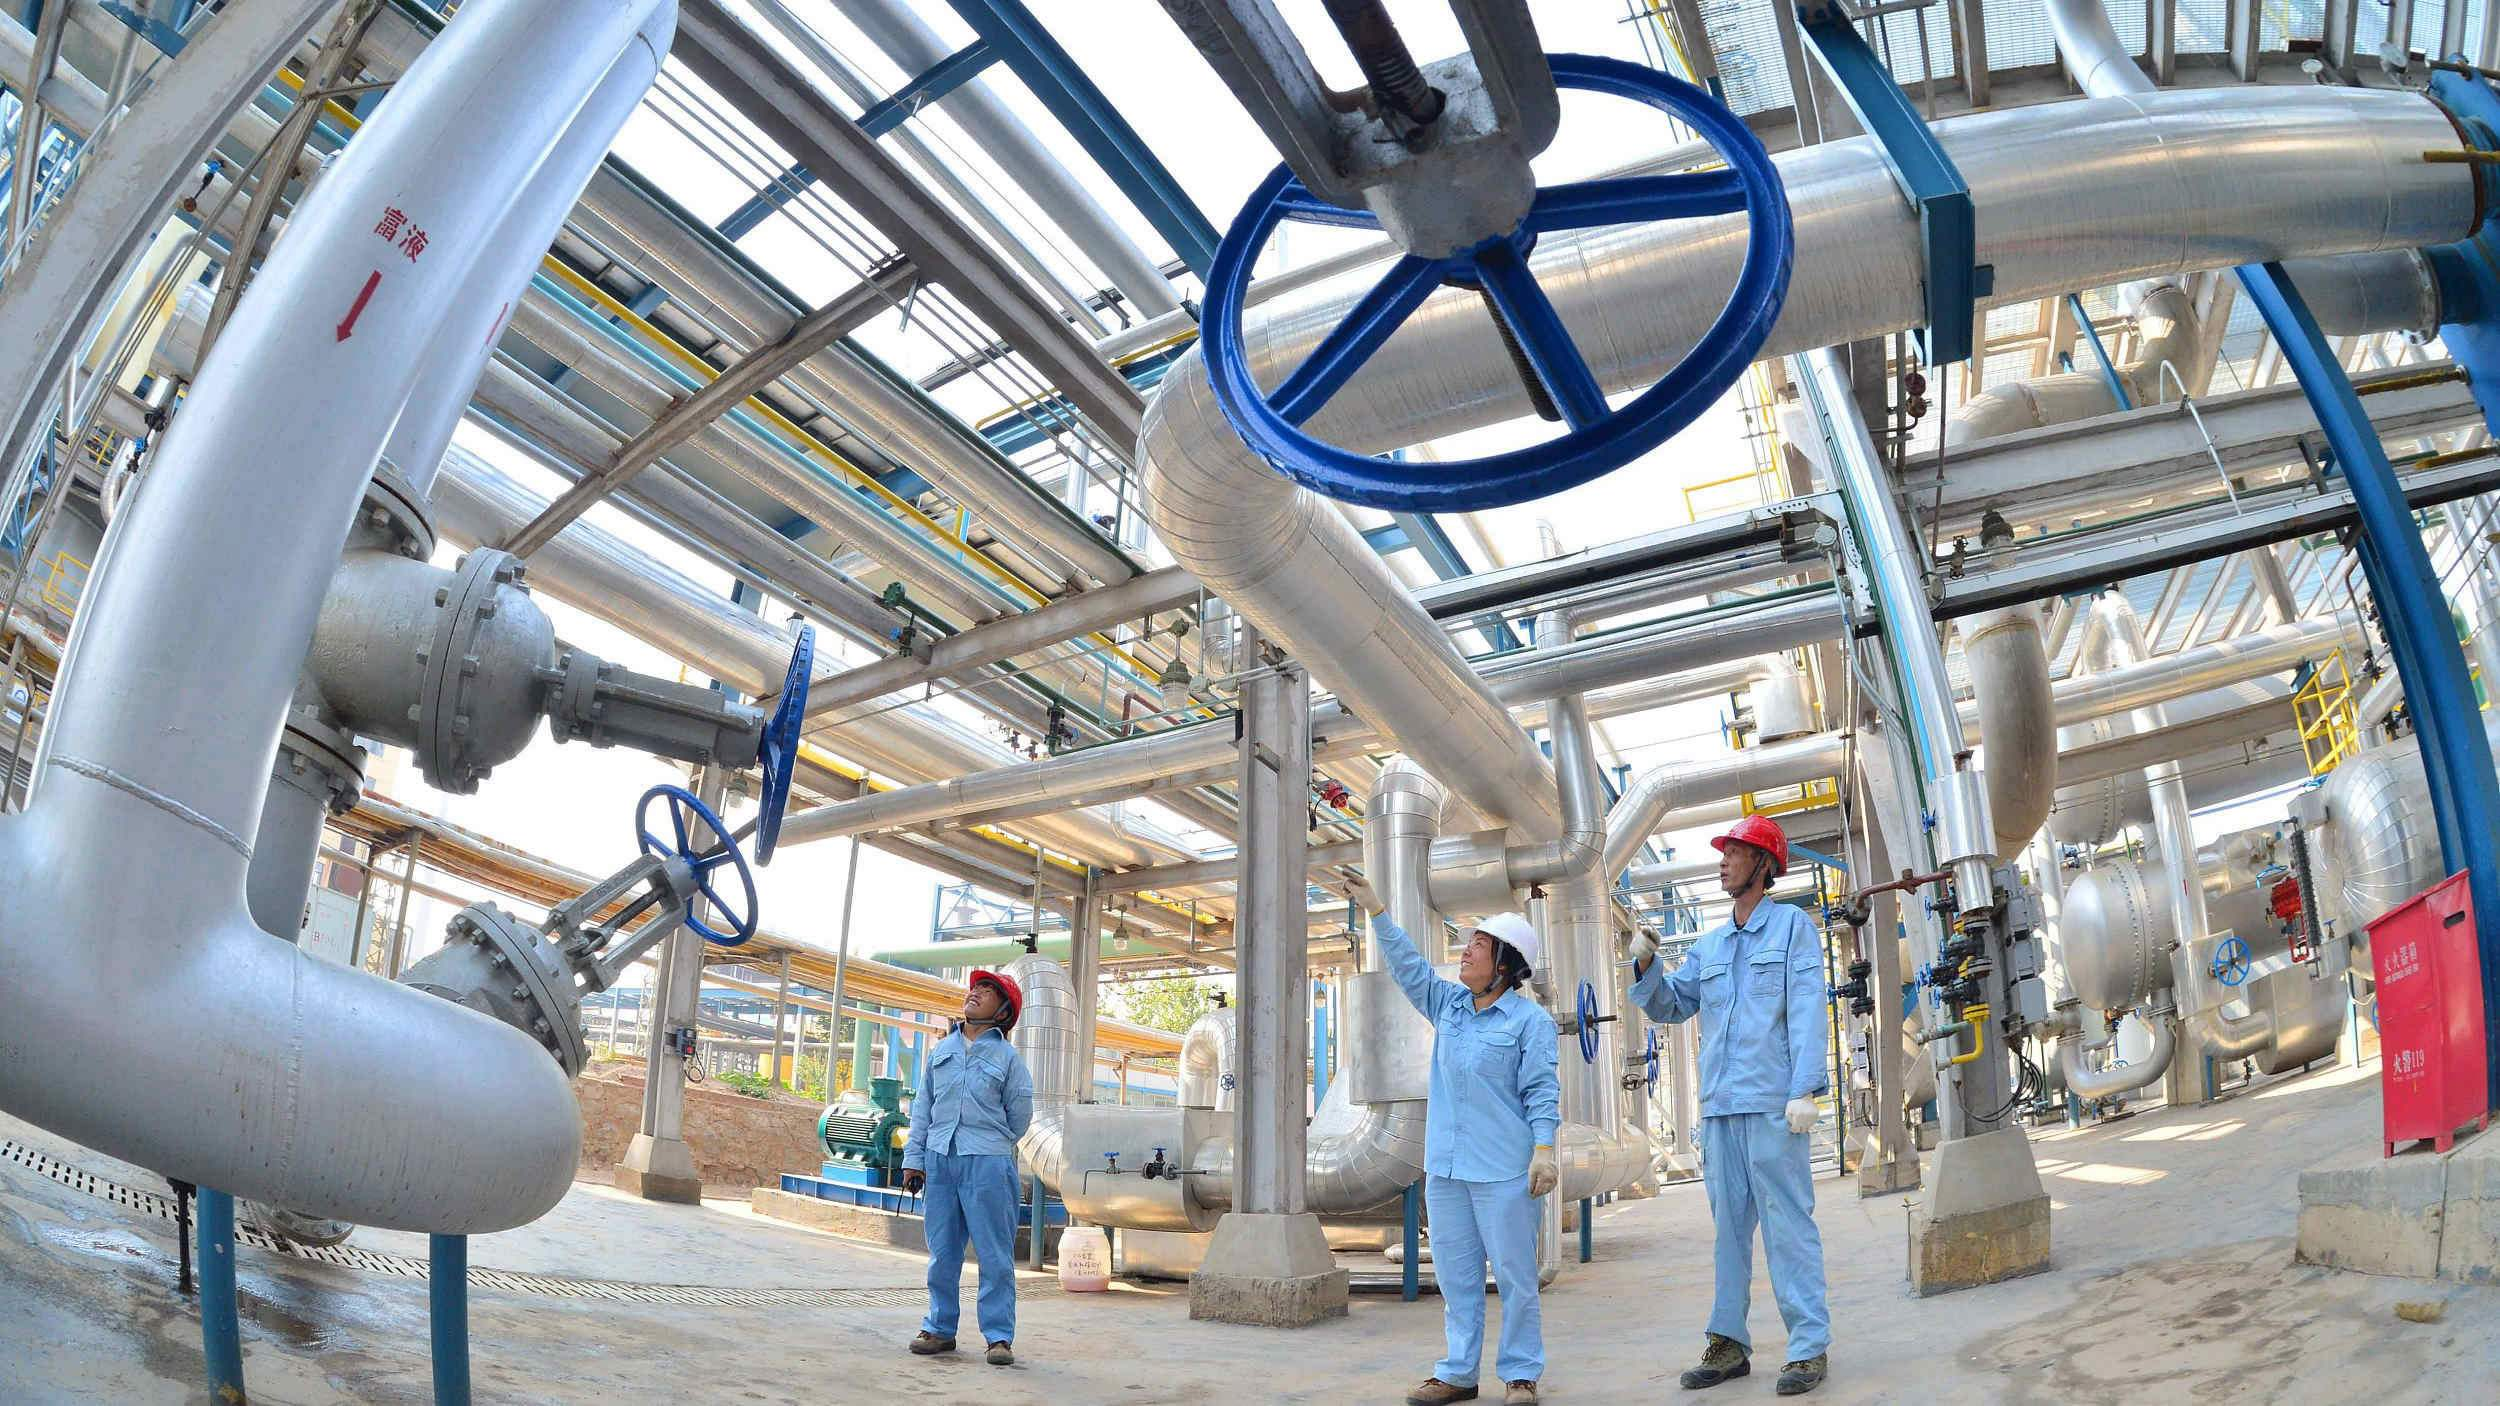 Guangdong's industrial growth picks up in first quarter